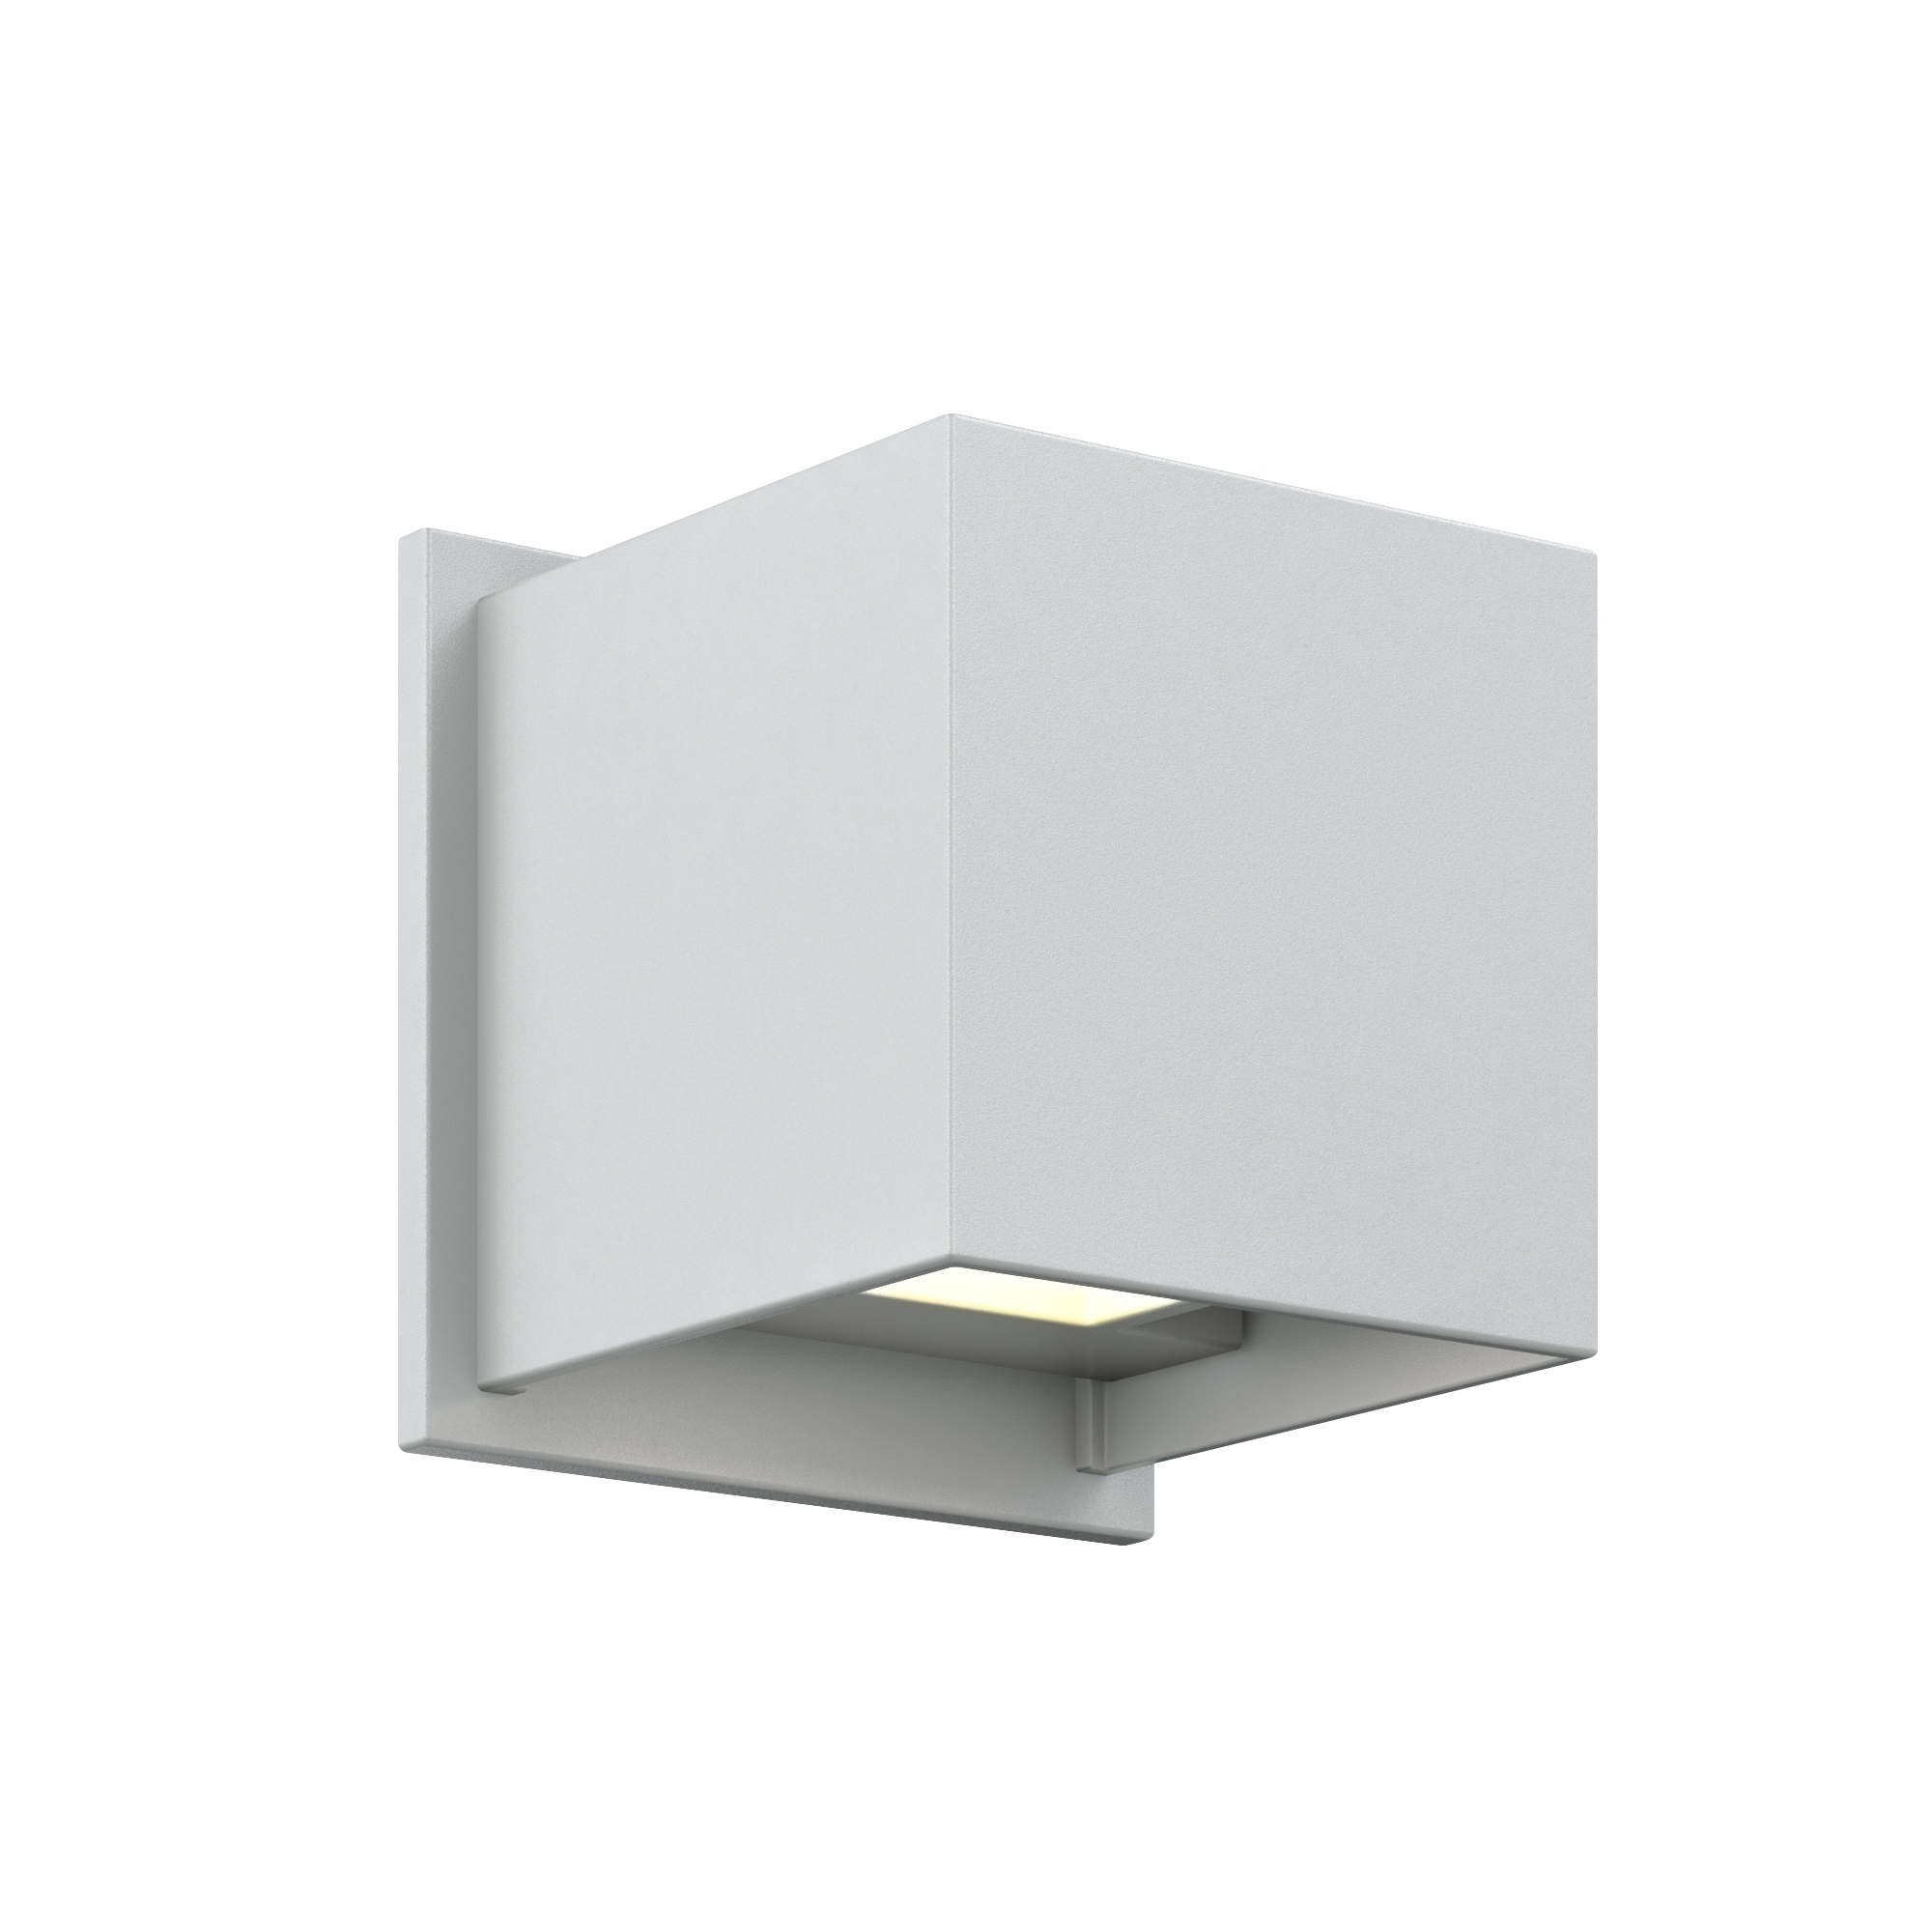 Shop DALS Lighting Indoor/Outdoor Square Directional LED Wall Sconce - On Sale - Free Shipping Today - Overstock.com - 18011161  sc 1 st  Overstock.com & Shop DALS Lighting Indoor/Outdoor Square Directional LED Wall Sconce ...